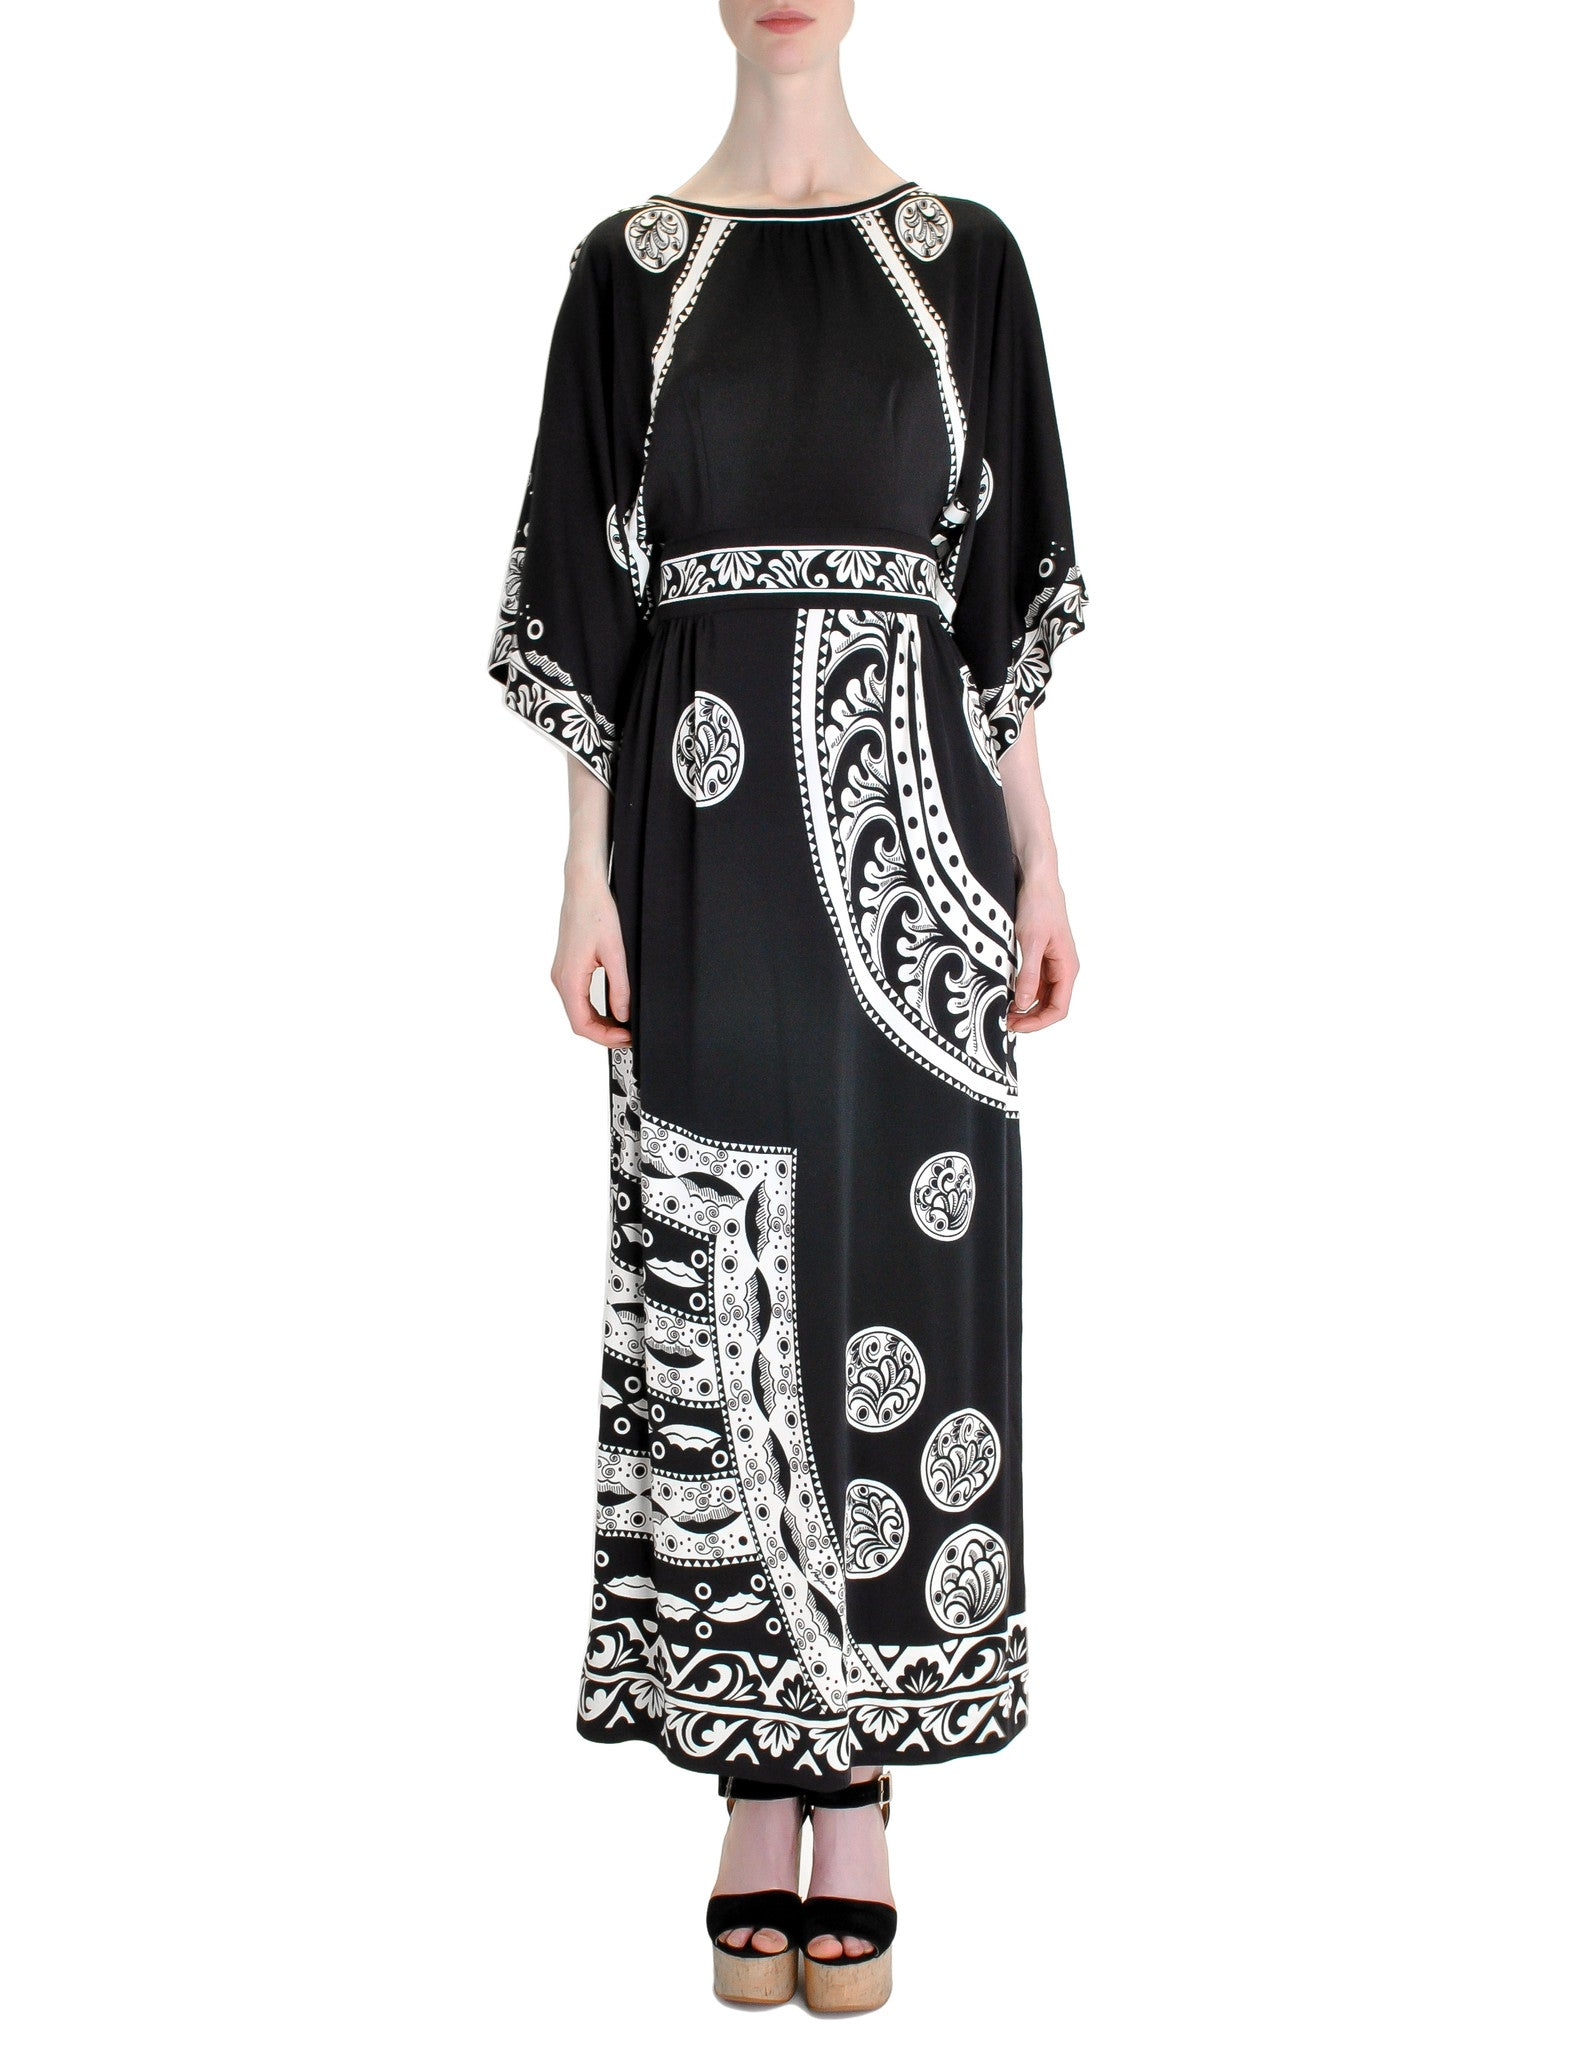 Paganne Vintage Black and White Maxi Dress - Amarcord Vintage Fashion  - 1